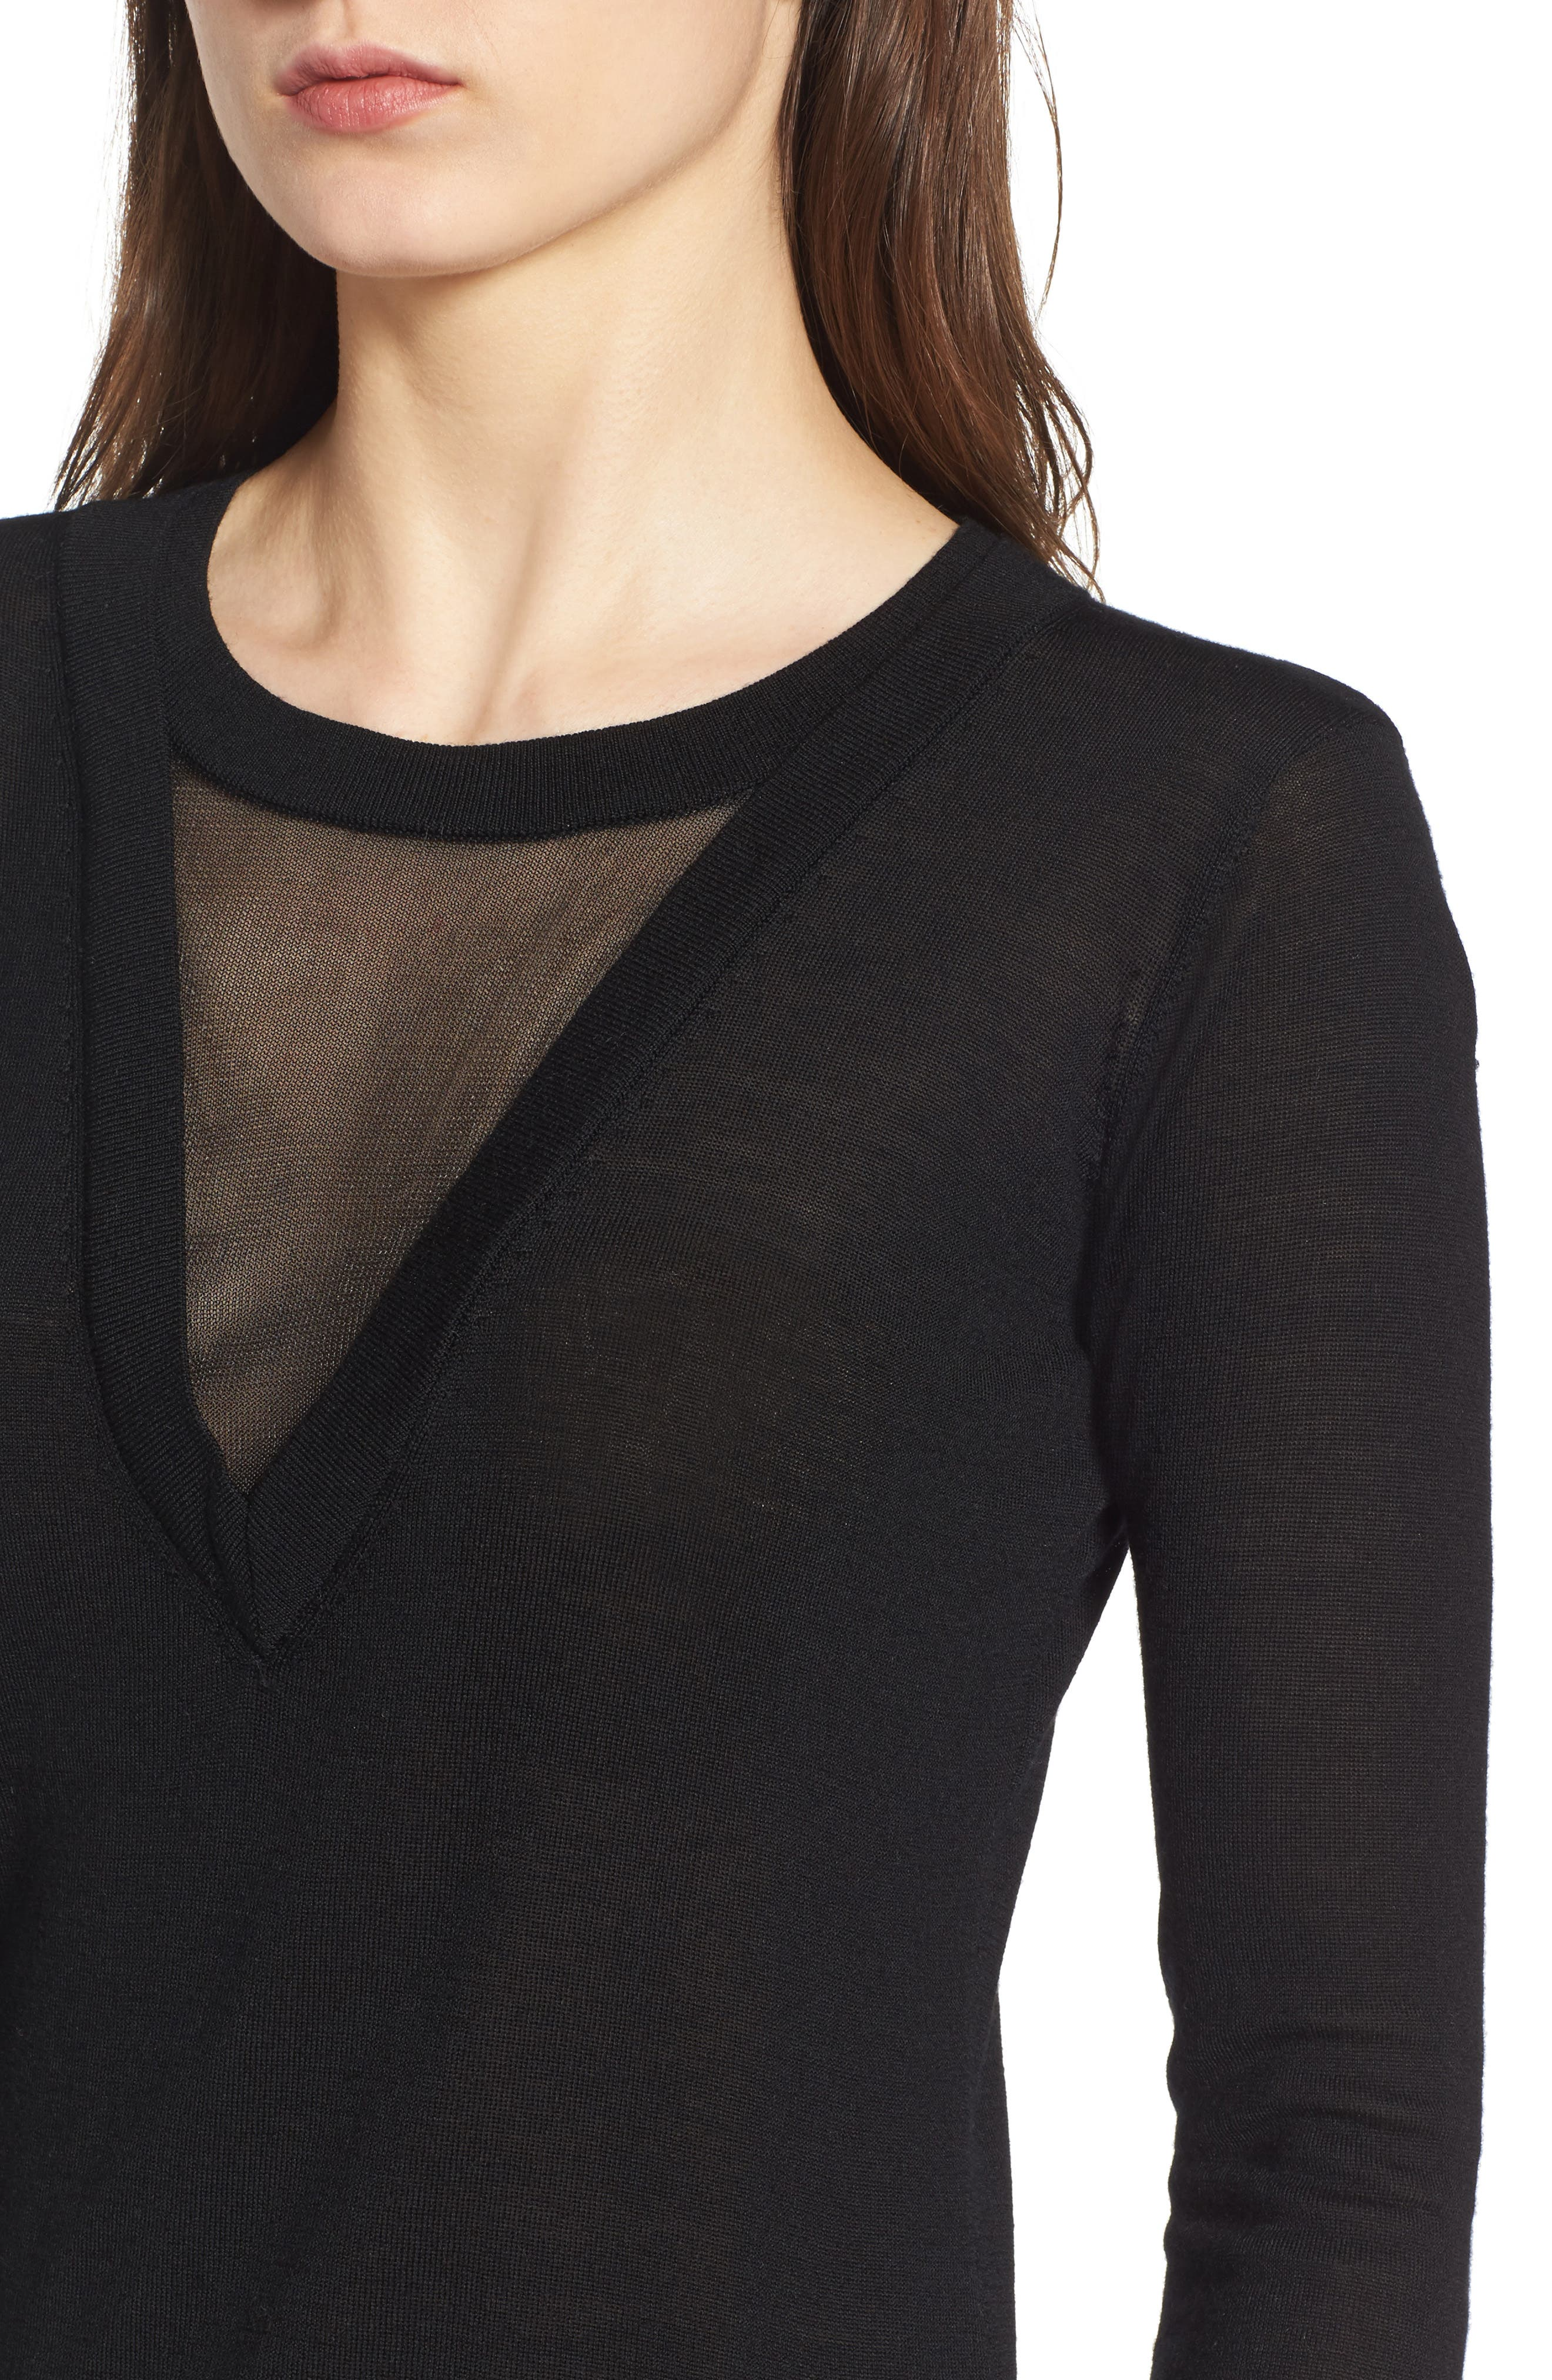 Chivalry Mesh Sweater,                             Alternate thumbnail 4, color,                             Black